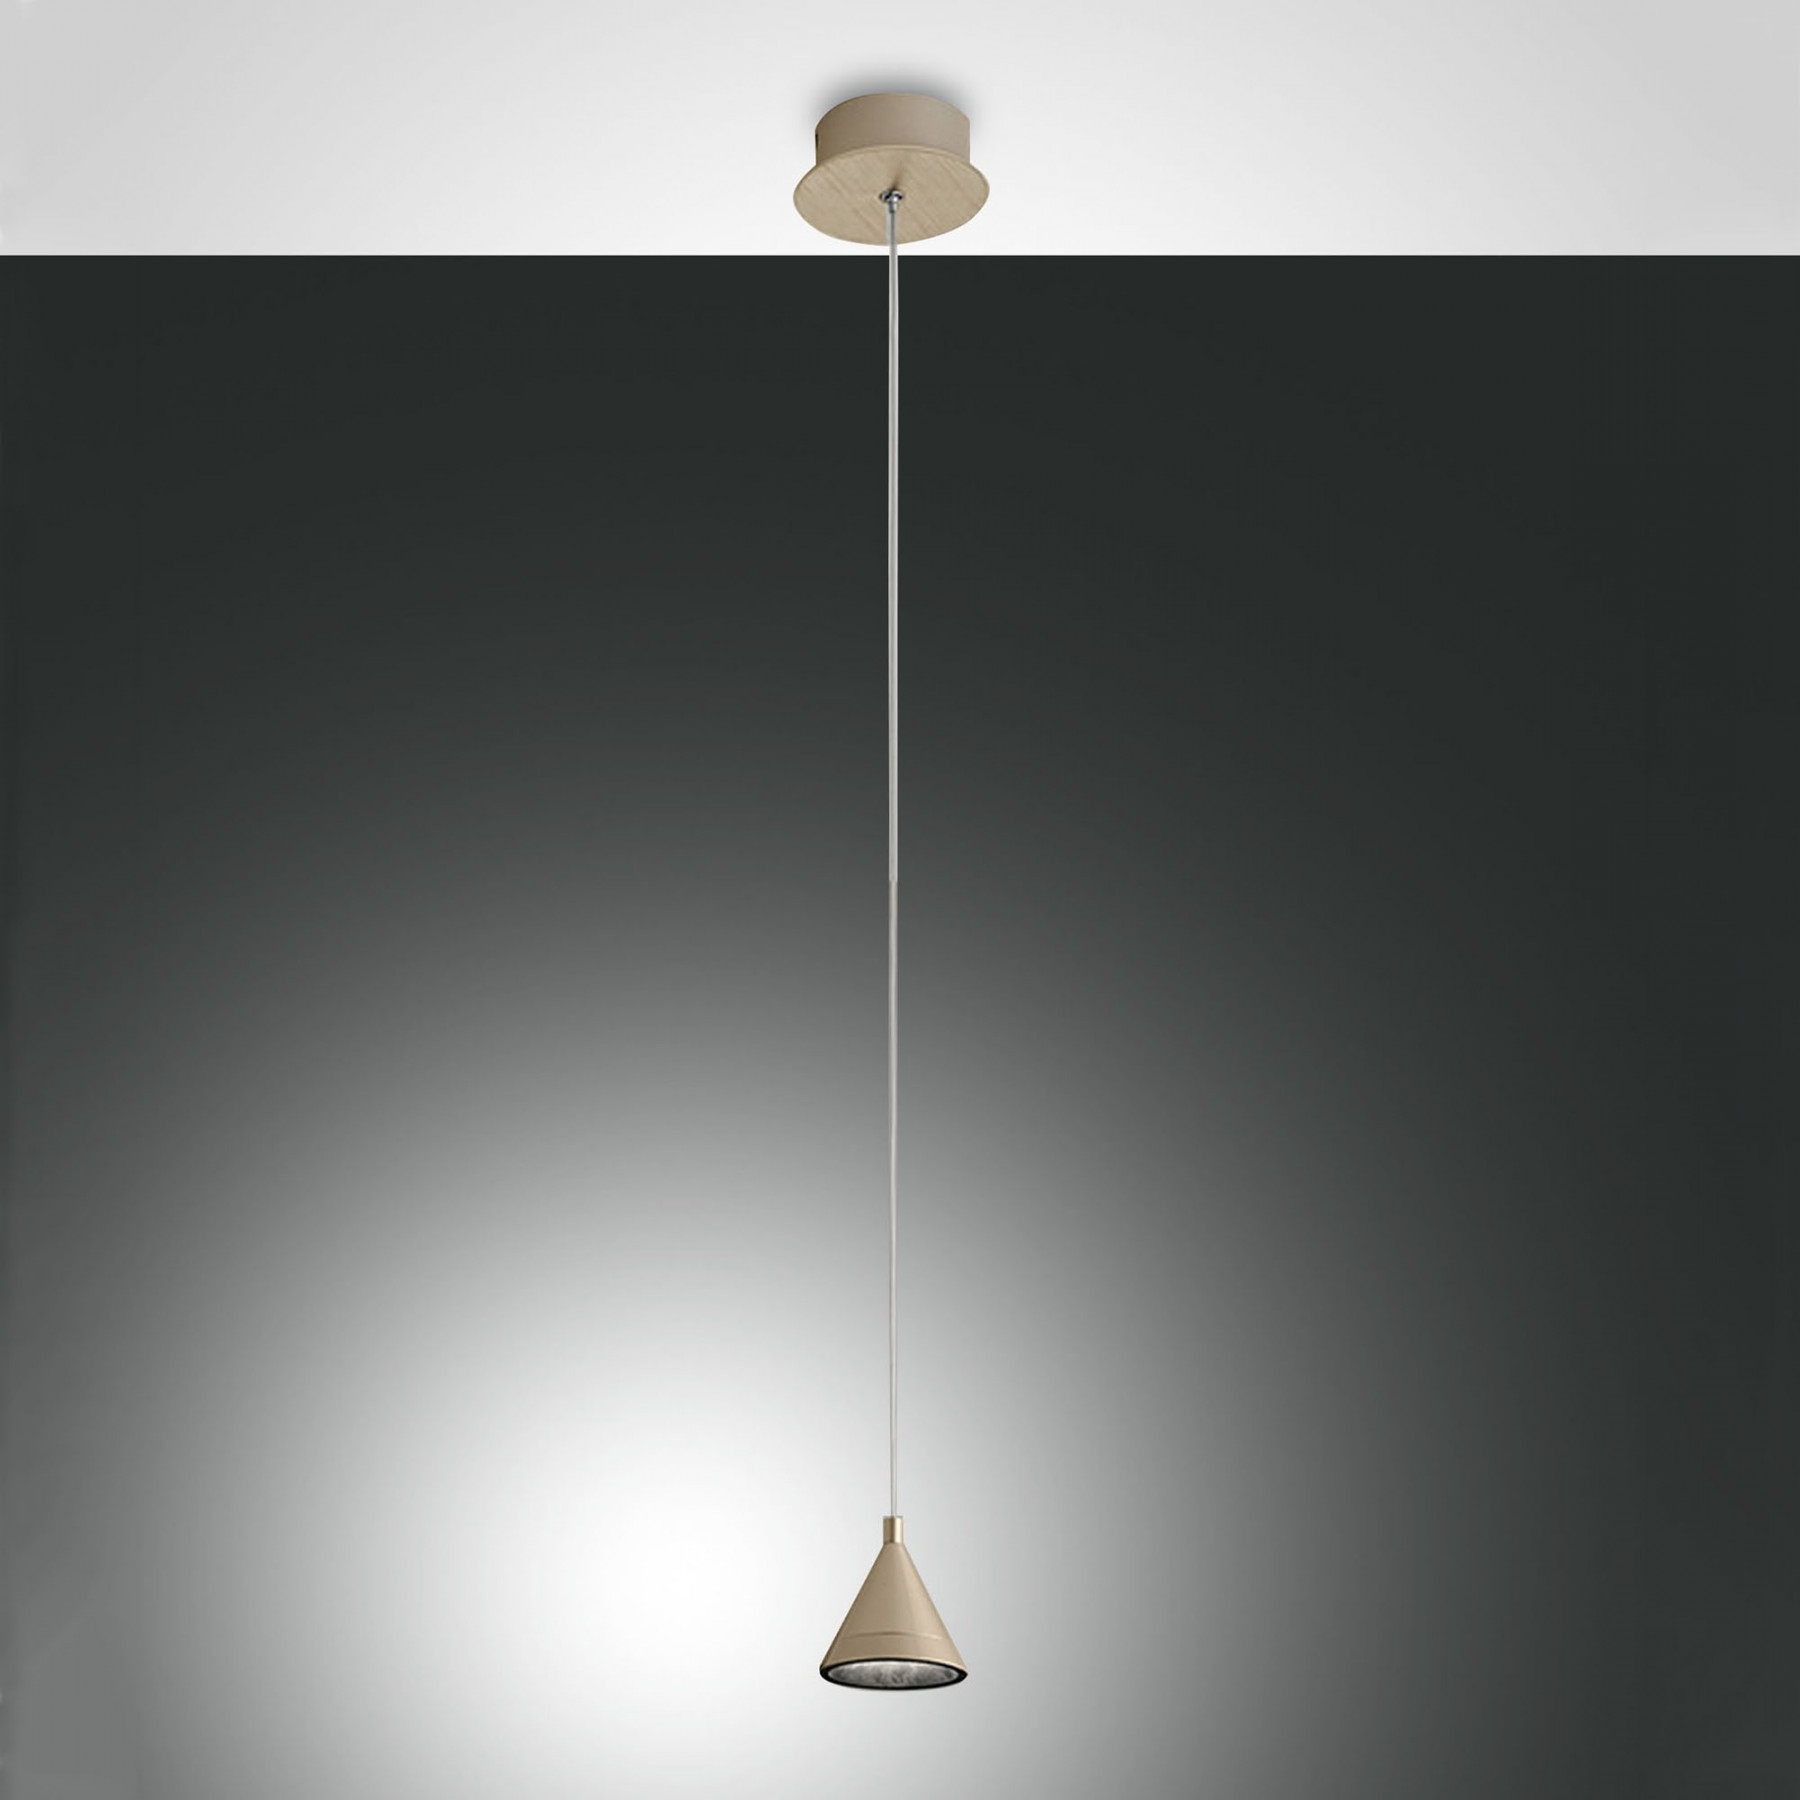 Guro 1 Light Cone Pendants Pertaining To Latest Fabas Luce Delta Led Ceiling Pendant Light (View 15 of 25)